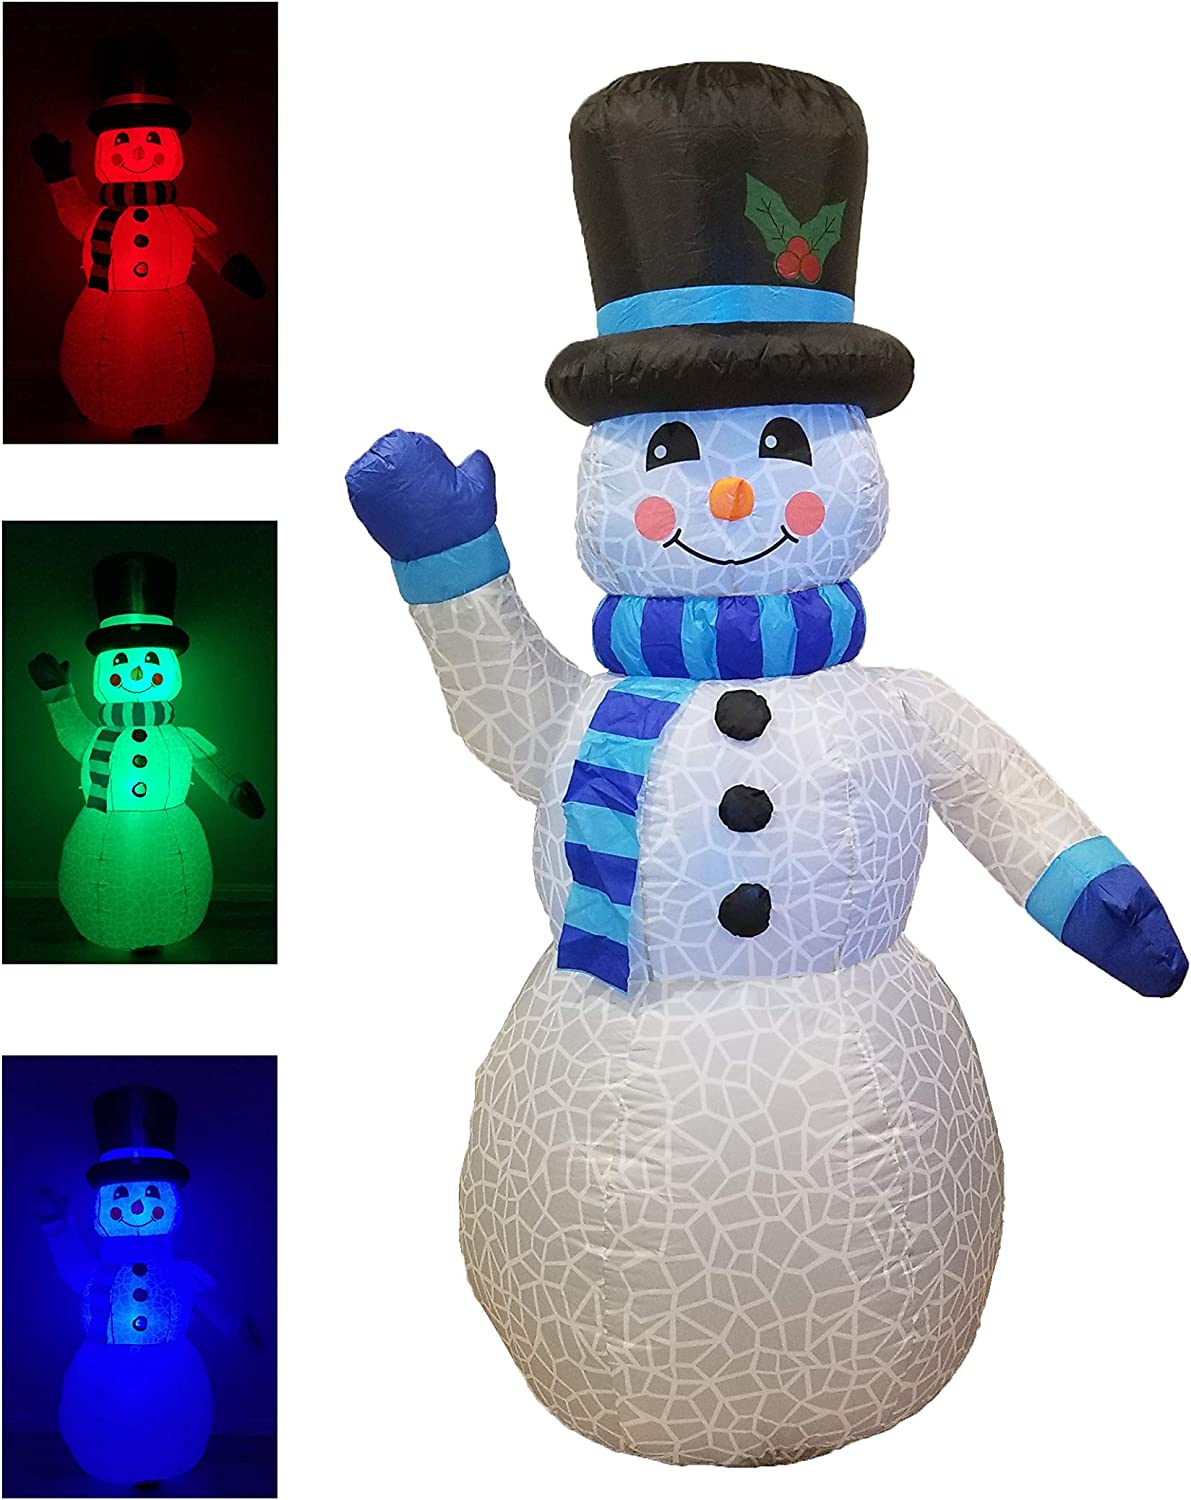 6 Foot Tall Christmas Inflatable Snowman Multi Color LED Lights Decor Outdoor Indoor Holiday Decorations, Blow Up LED Lighted Christmas Yard Decor, Giant Lawn Inflatable for Home Family Outside